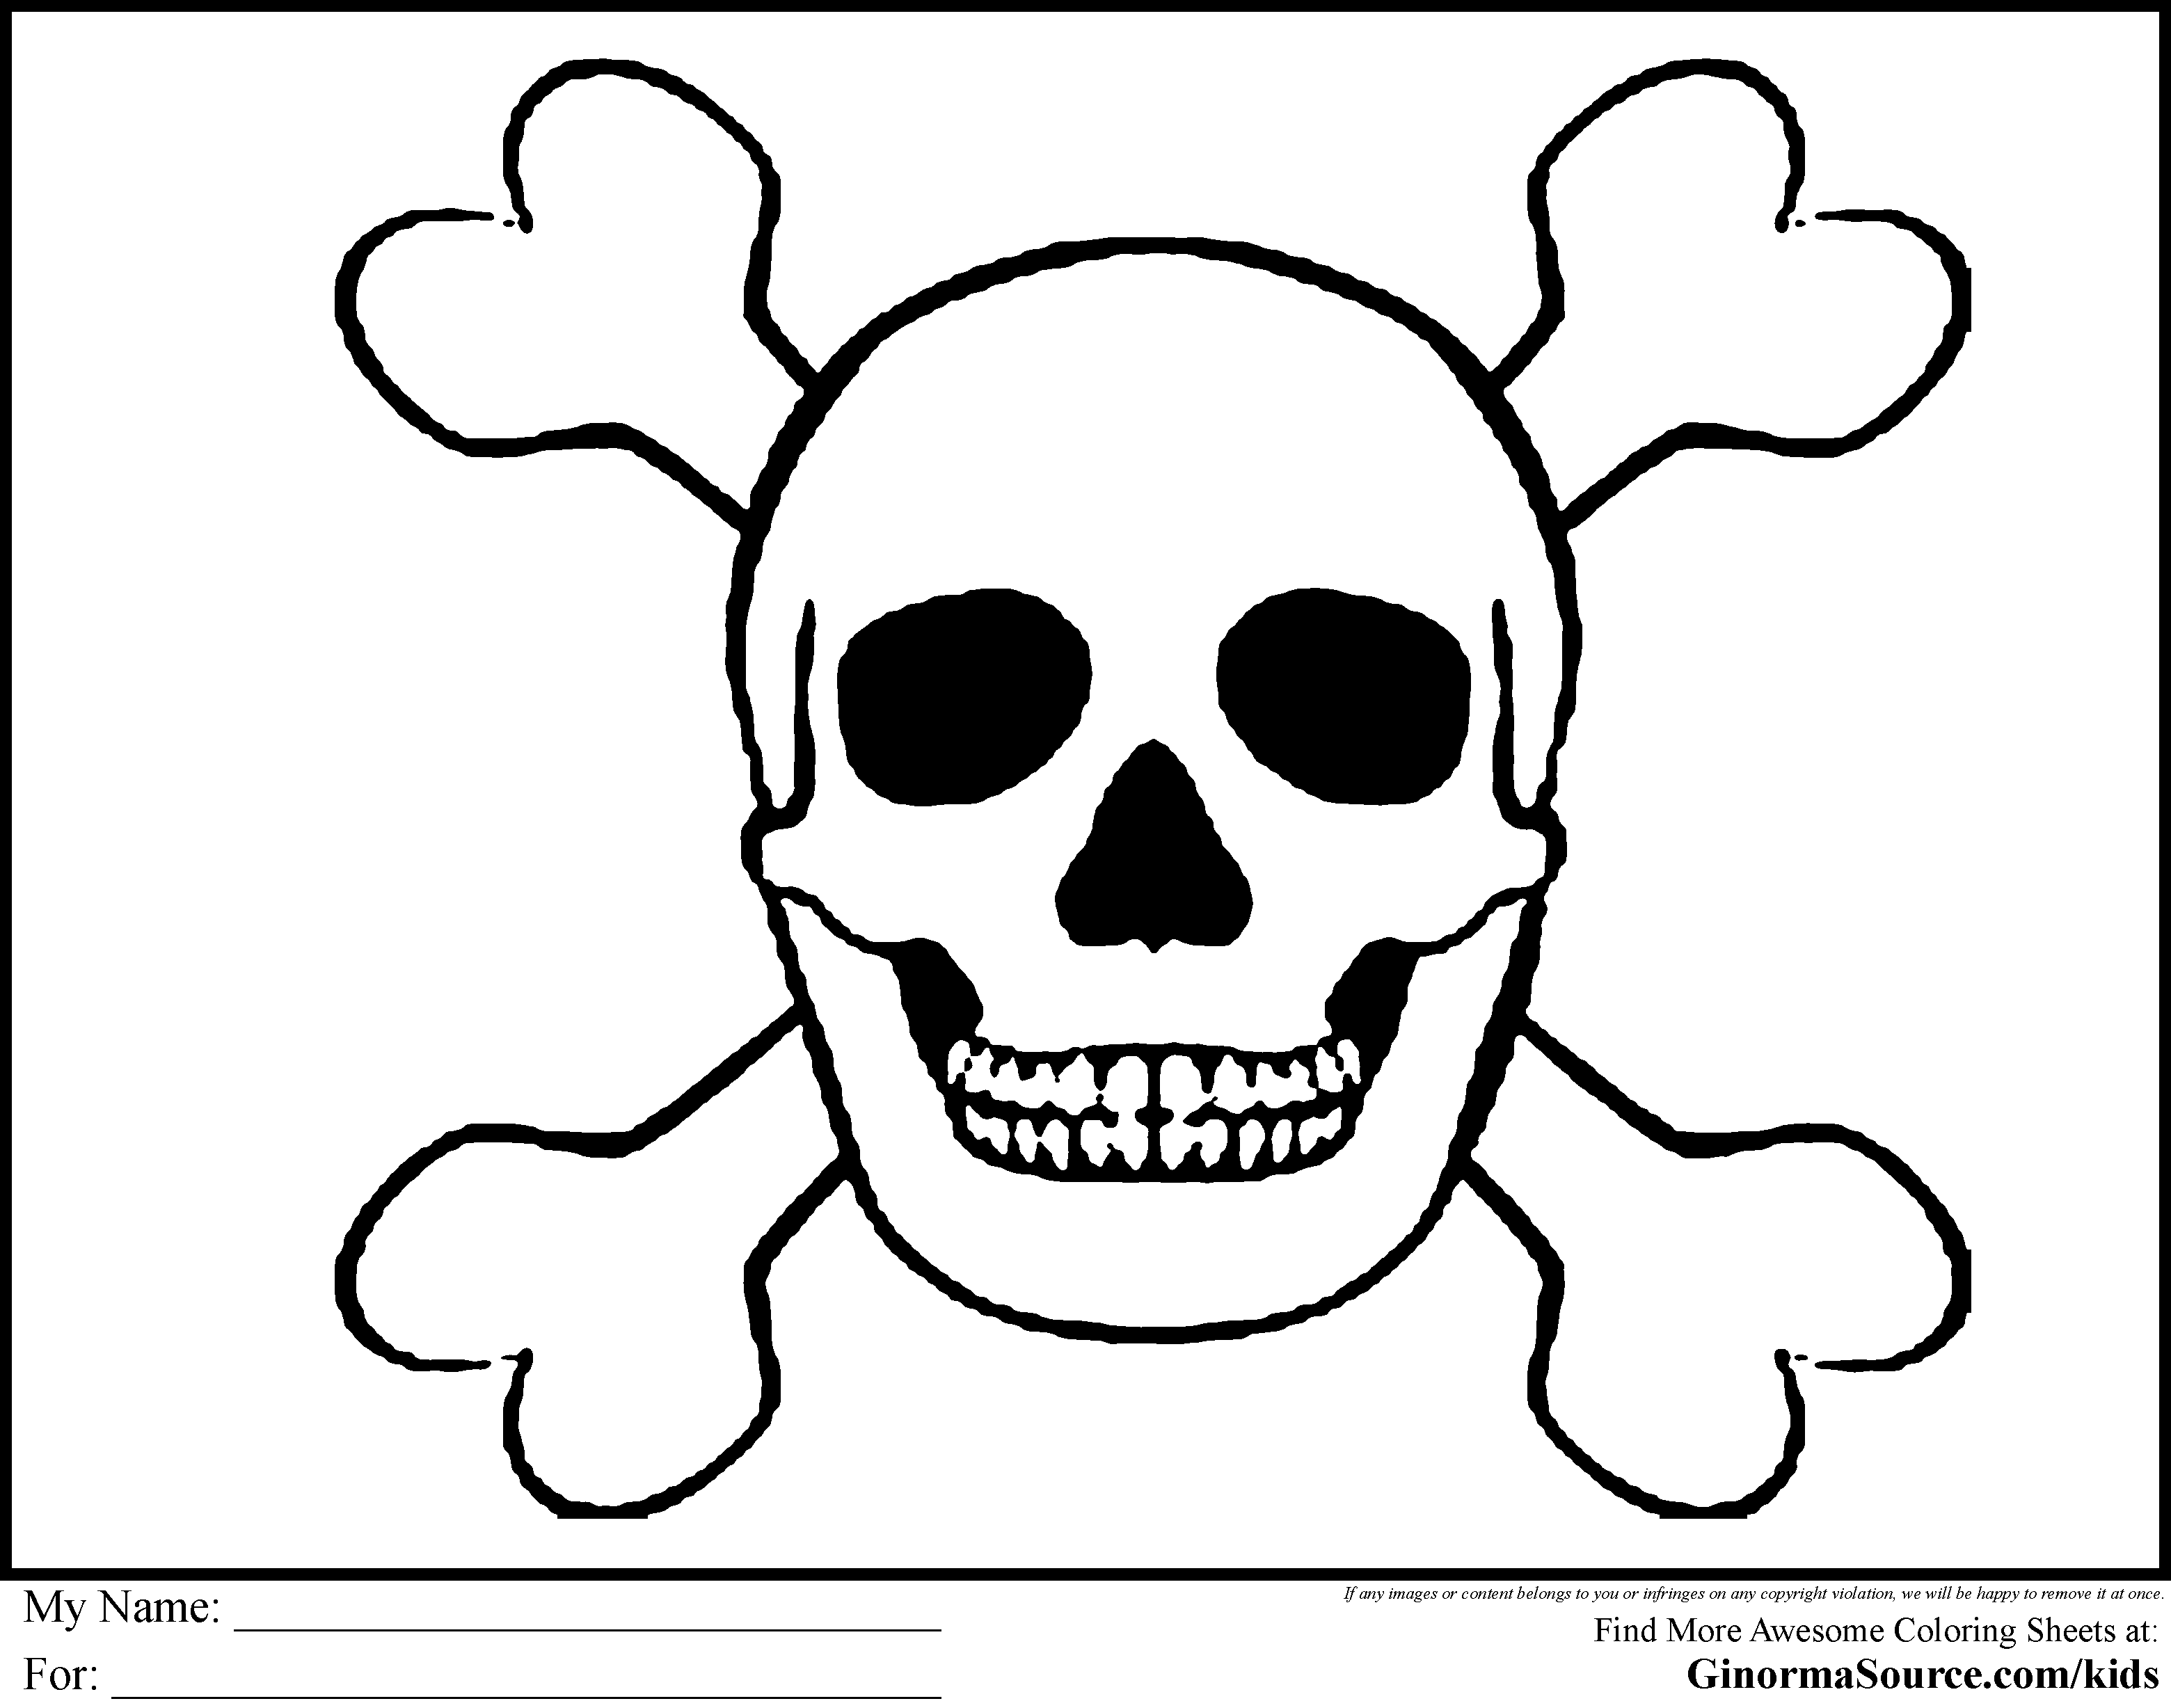 Pirate Coloring Pages Skull And Bones Ginormasource Kids Pirate Coloring Pages Flag Coloring Pages Skull Coloring Pages